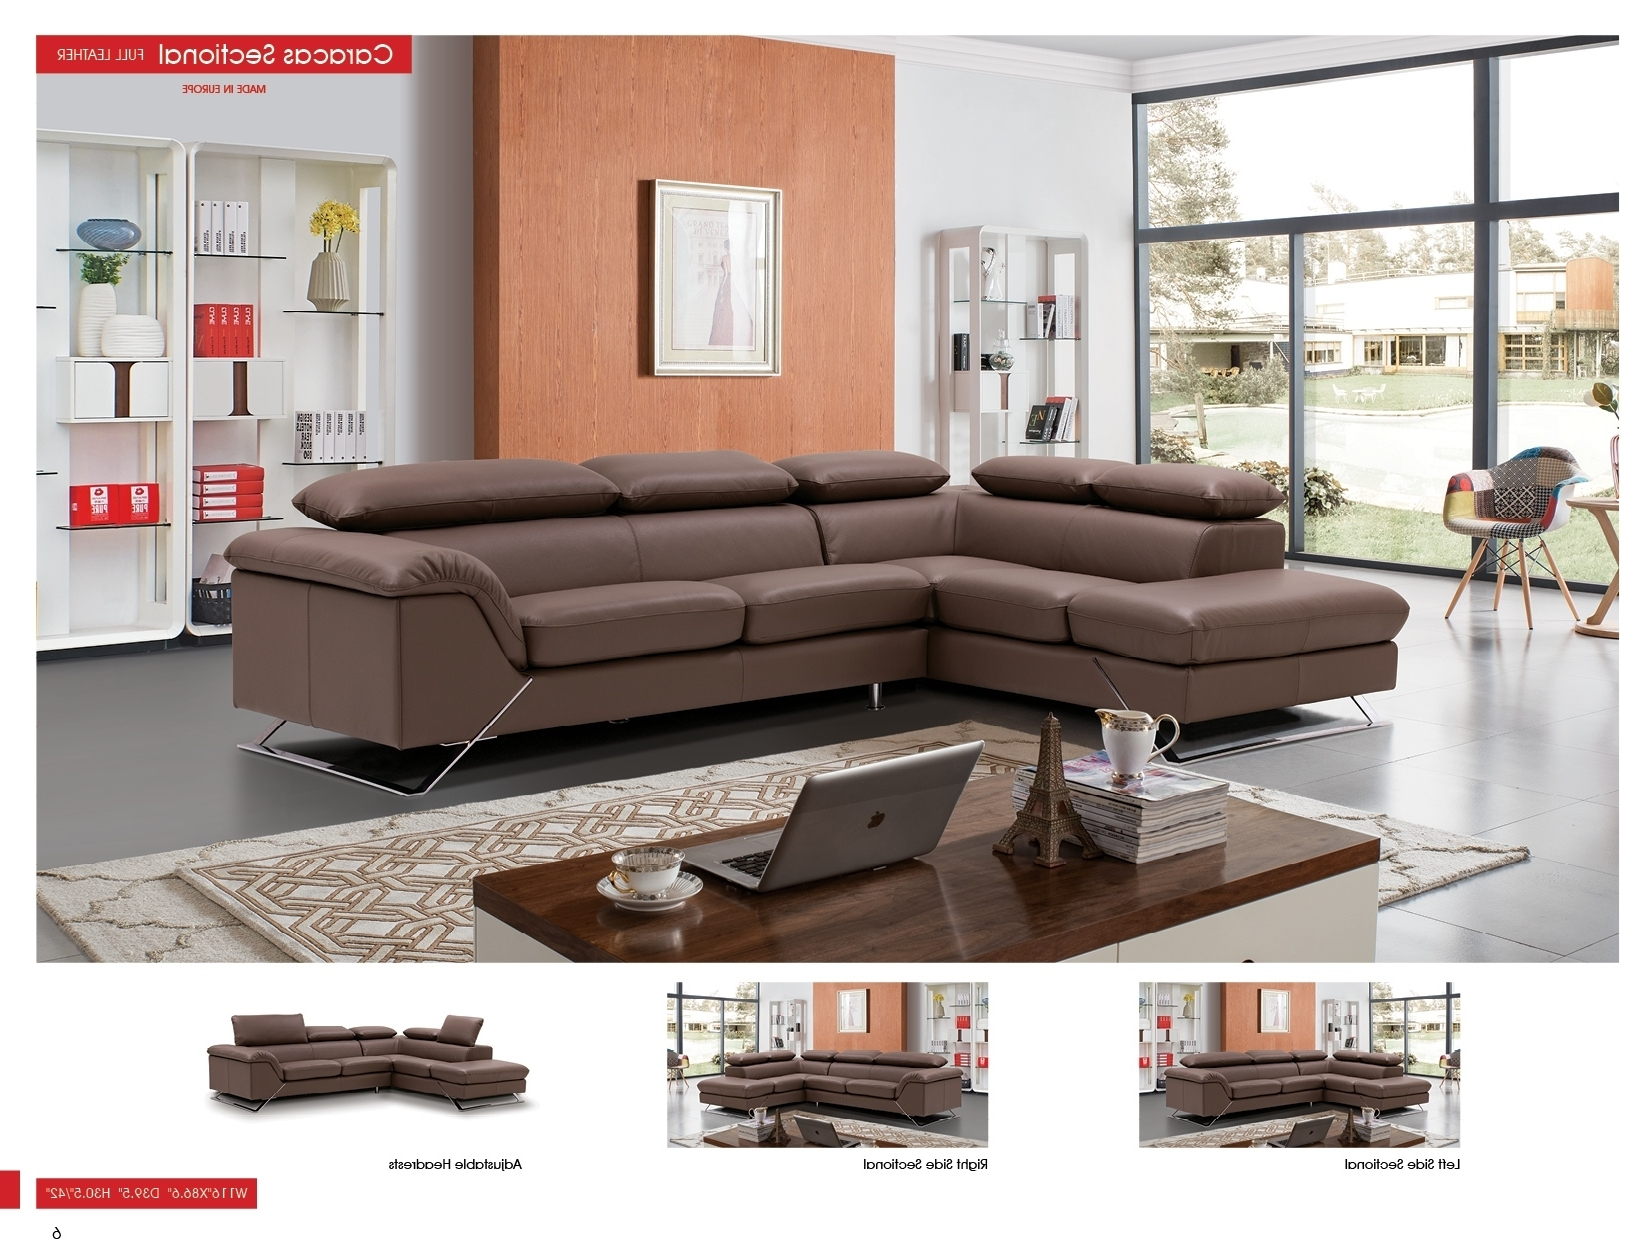 Caracas Sectional Full Leather, Sectionals, Living Room Furniture Within Most Current Sectional Sofas From Europe (View 19 of 20)